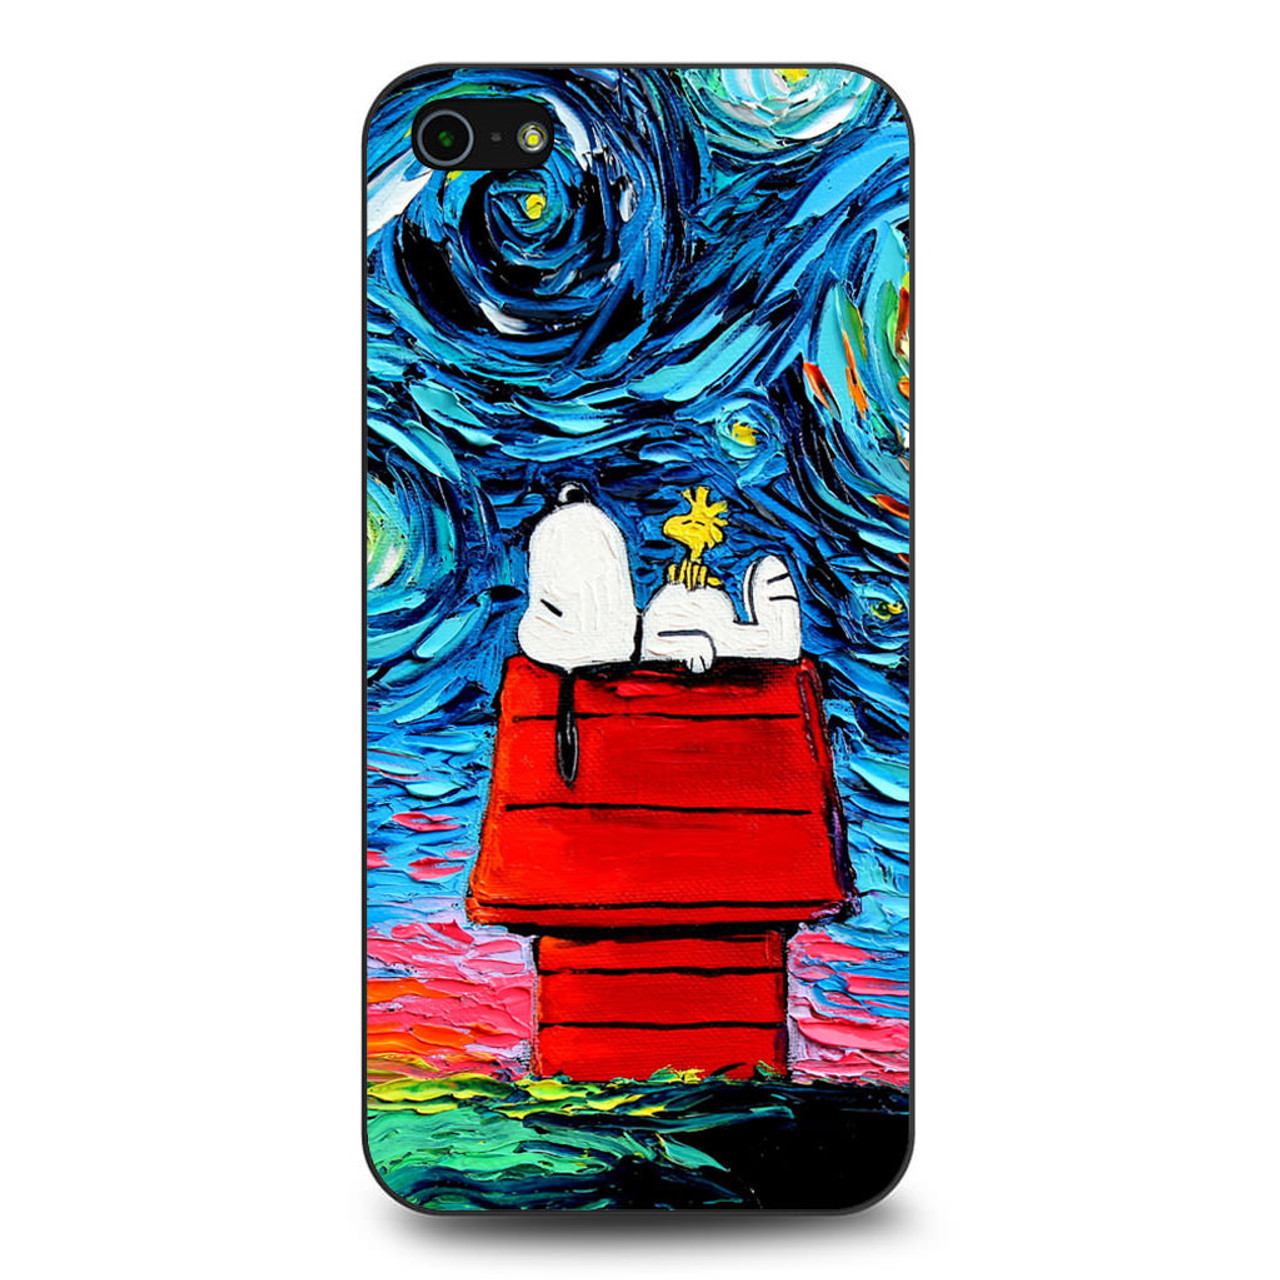 online retailer accef 700ce Snoopy Starry Night Van Gogh iPhone 5/5S/SE Case